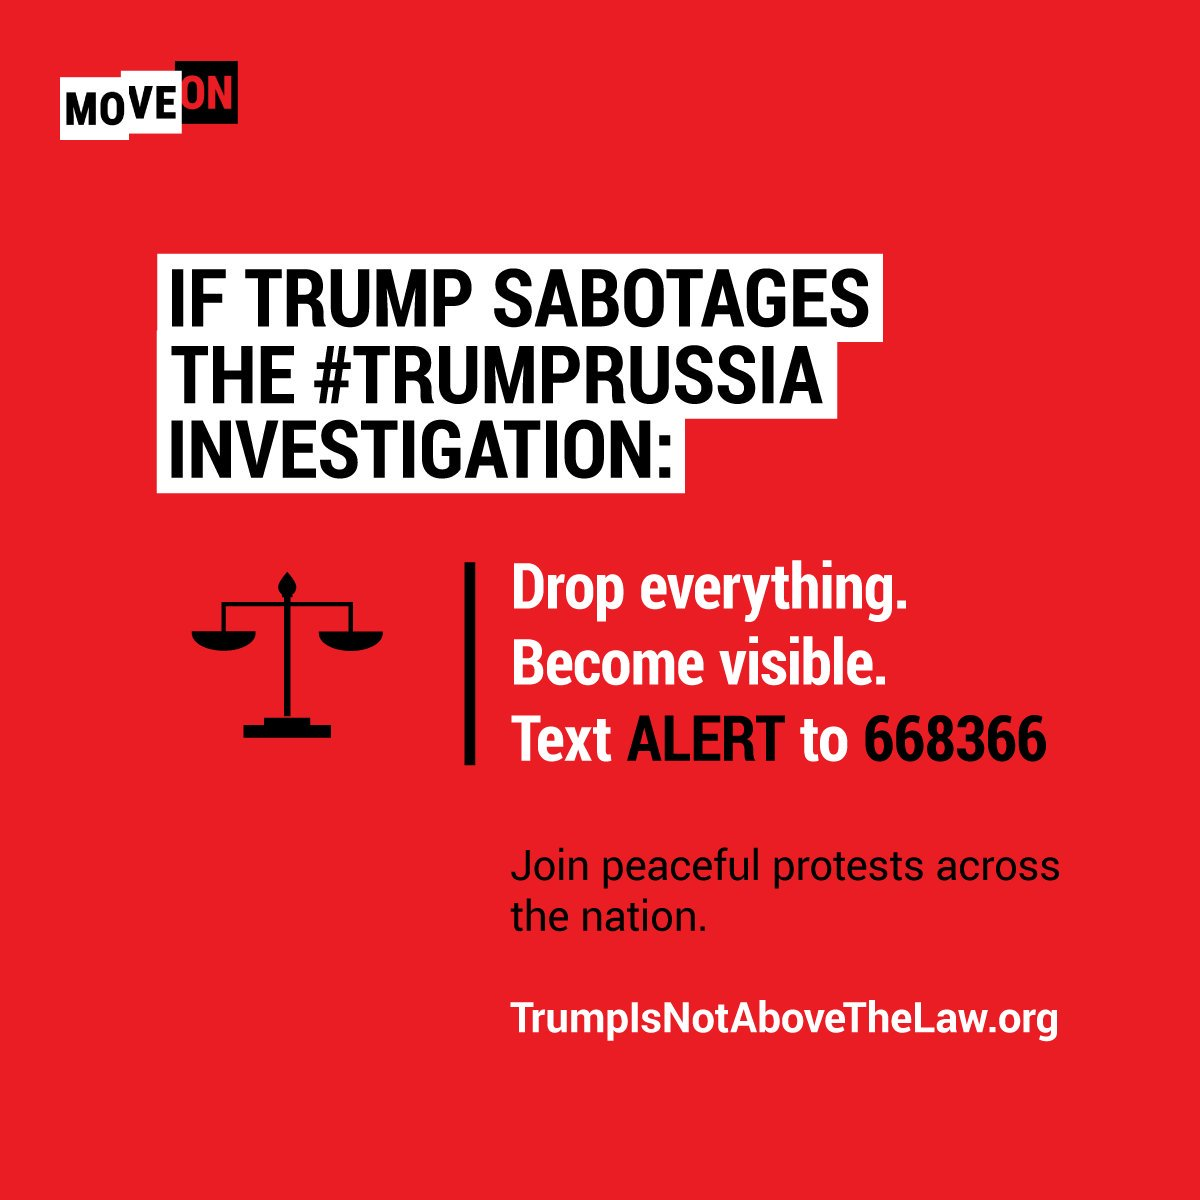 400,000+ activists are ready to take action if @realDonaldTrump sabotages #Mueller's #TrumpRussia investigation. Text ALERT to 668366 & head here: https://t.co/stKLh1DCbN